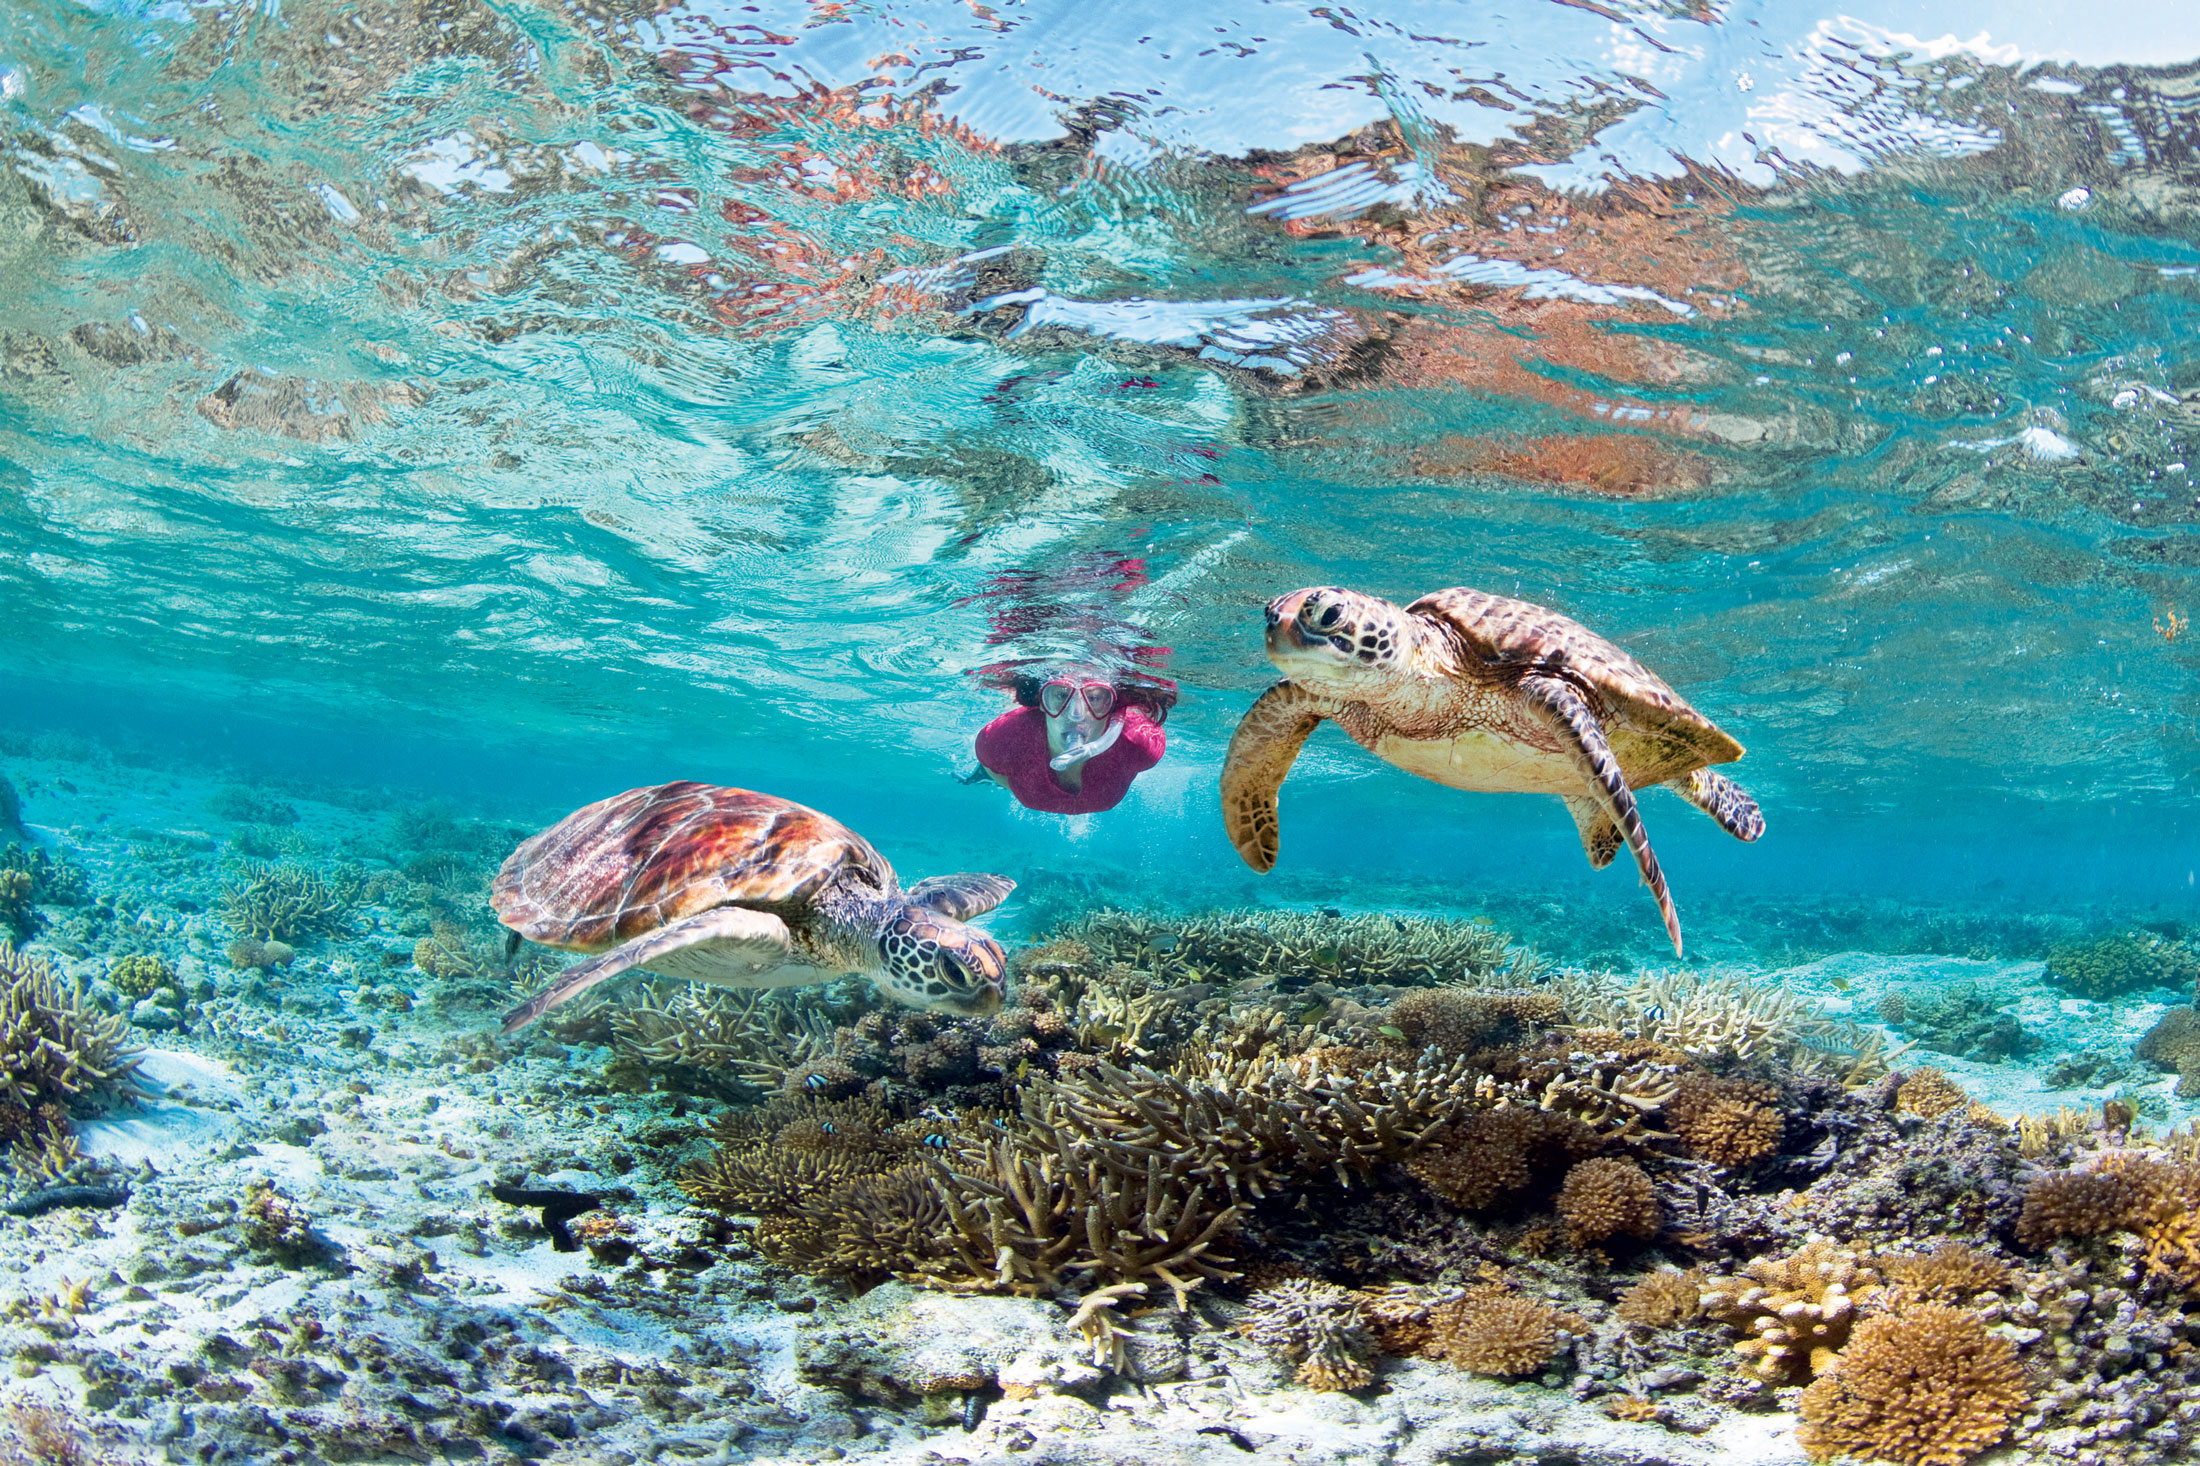 The great barrier reef essays 250-350 words